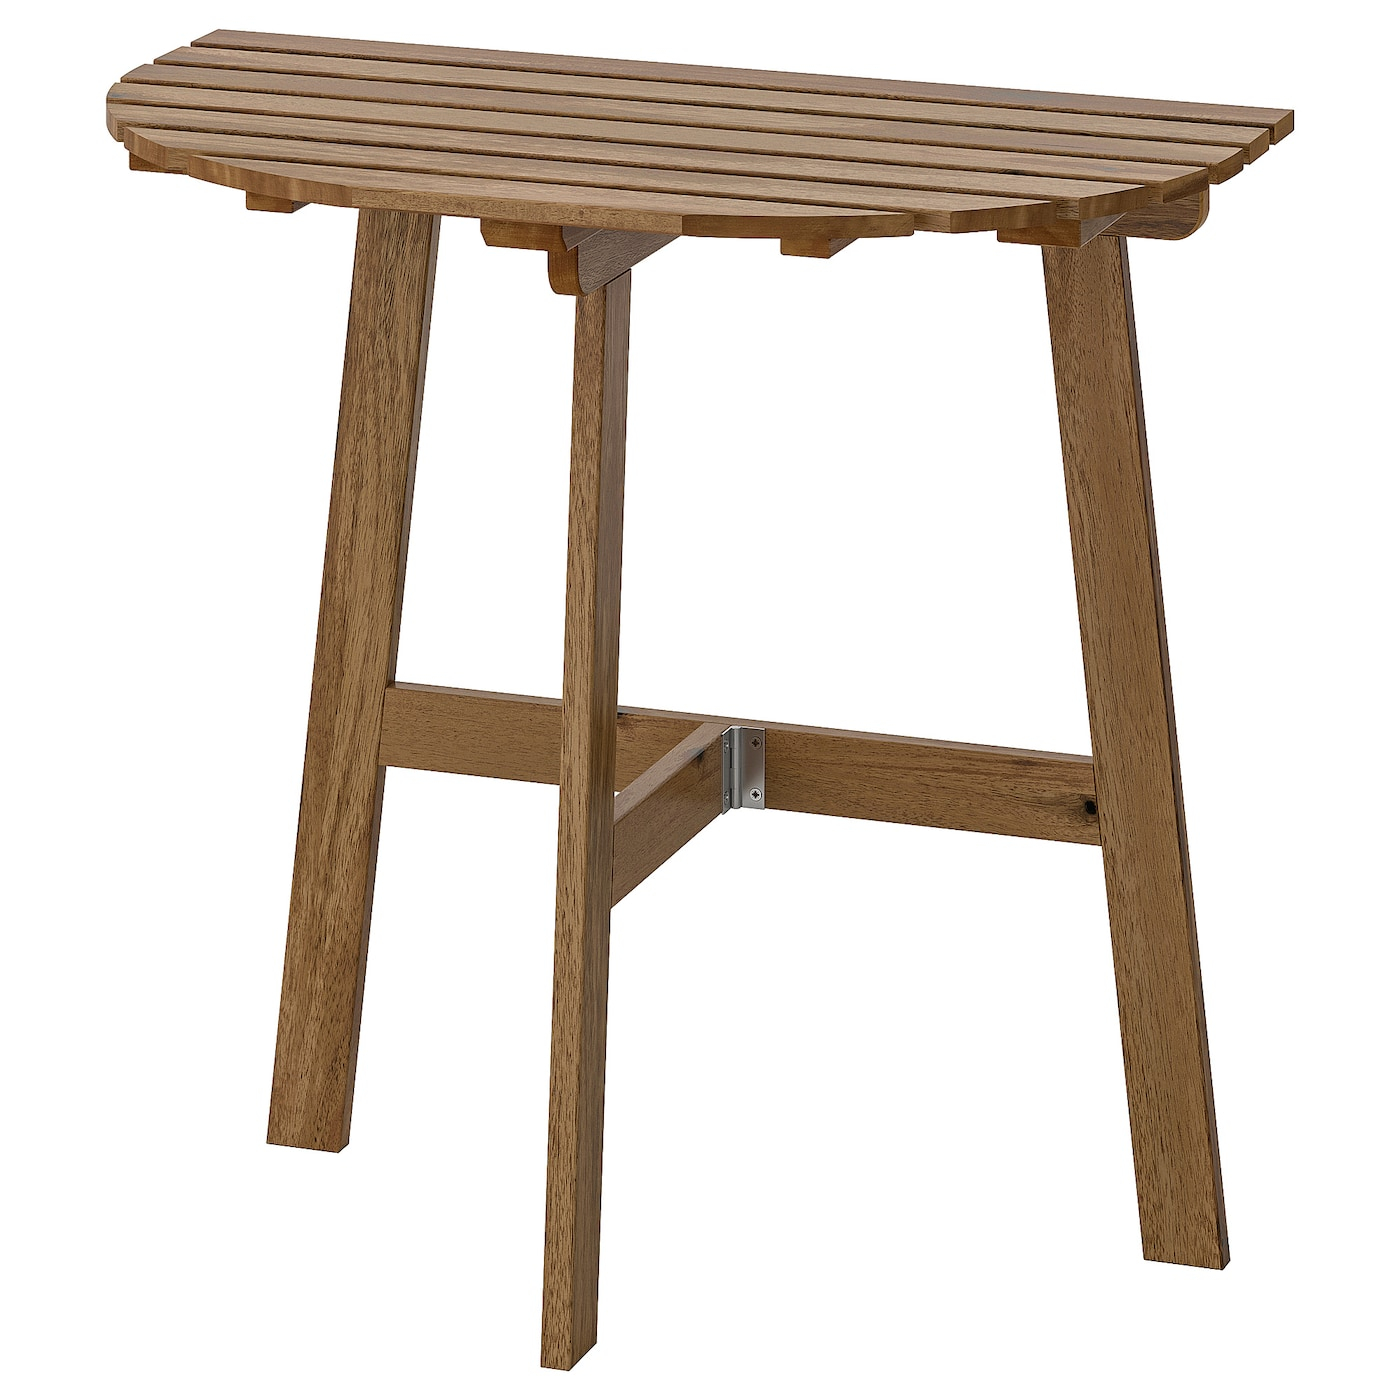 Askholmen Table For Wall Outdoor Folding Gray Brown Stained Light Brown Stained Light Brown 27 12x17 38 70x44 Cm within measurements 1400 X 1400